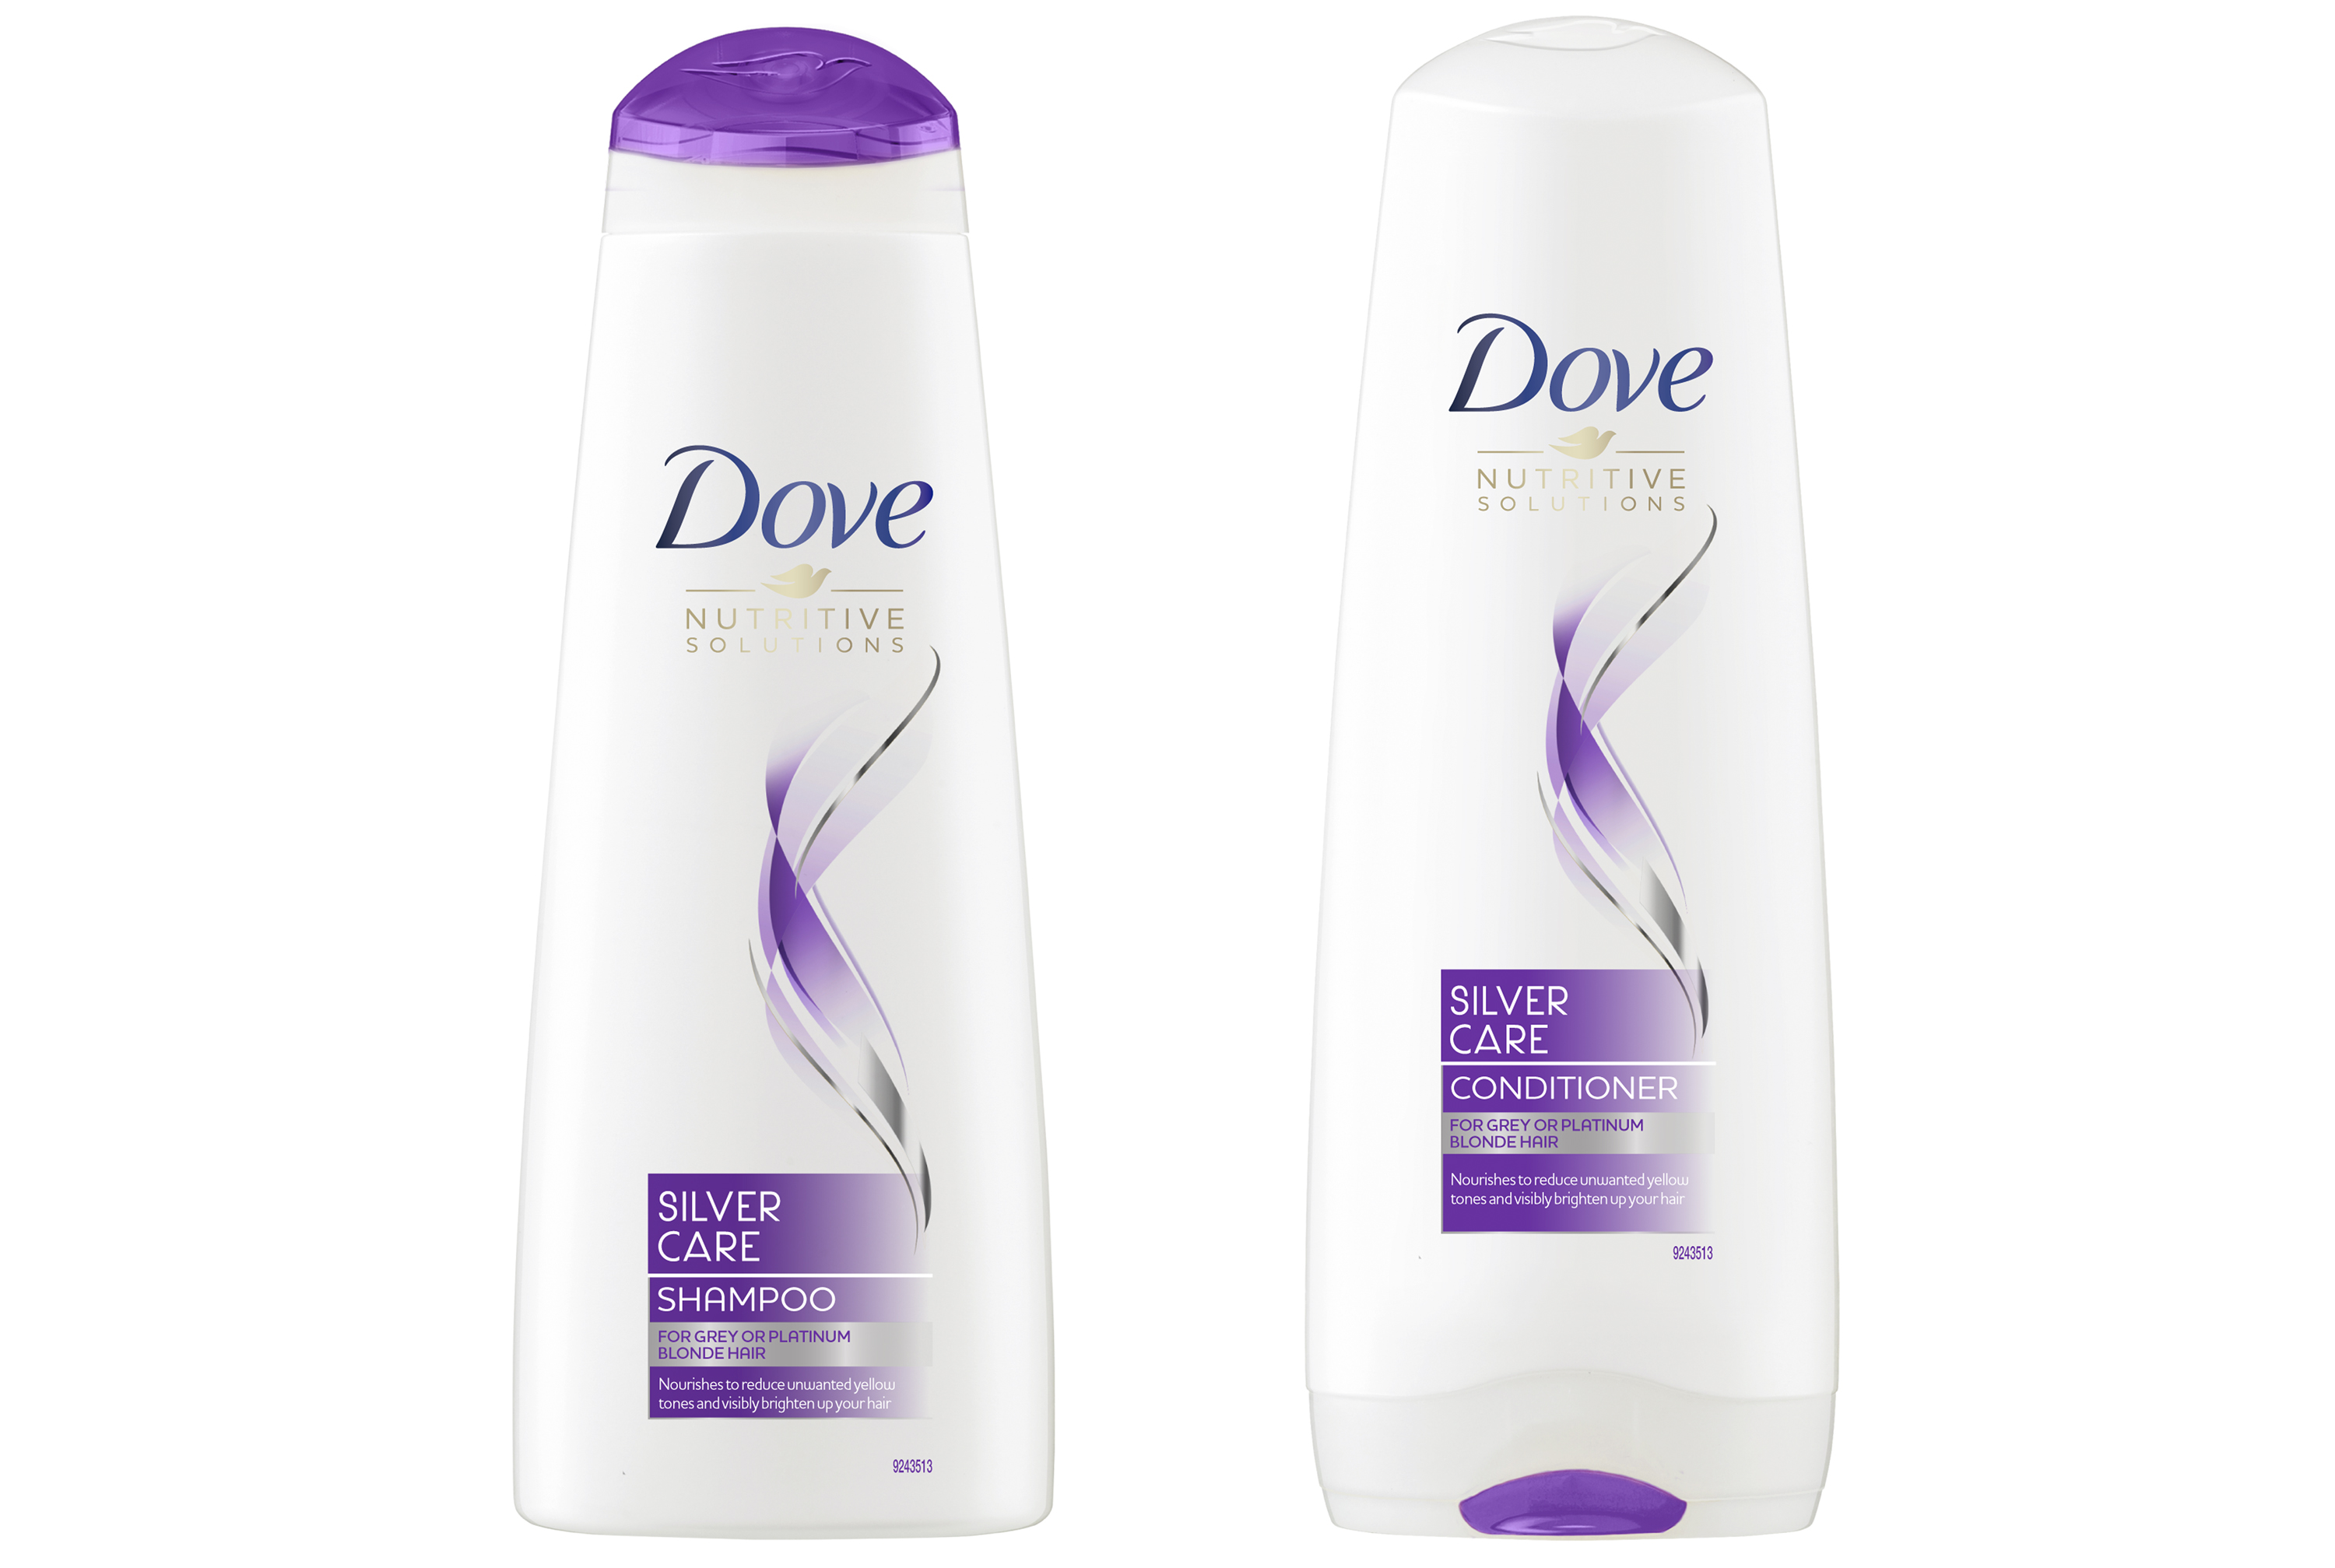 Dove Silver Care Shampoo and Conditioner